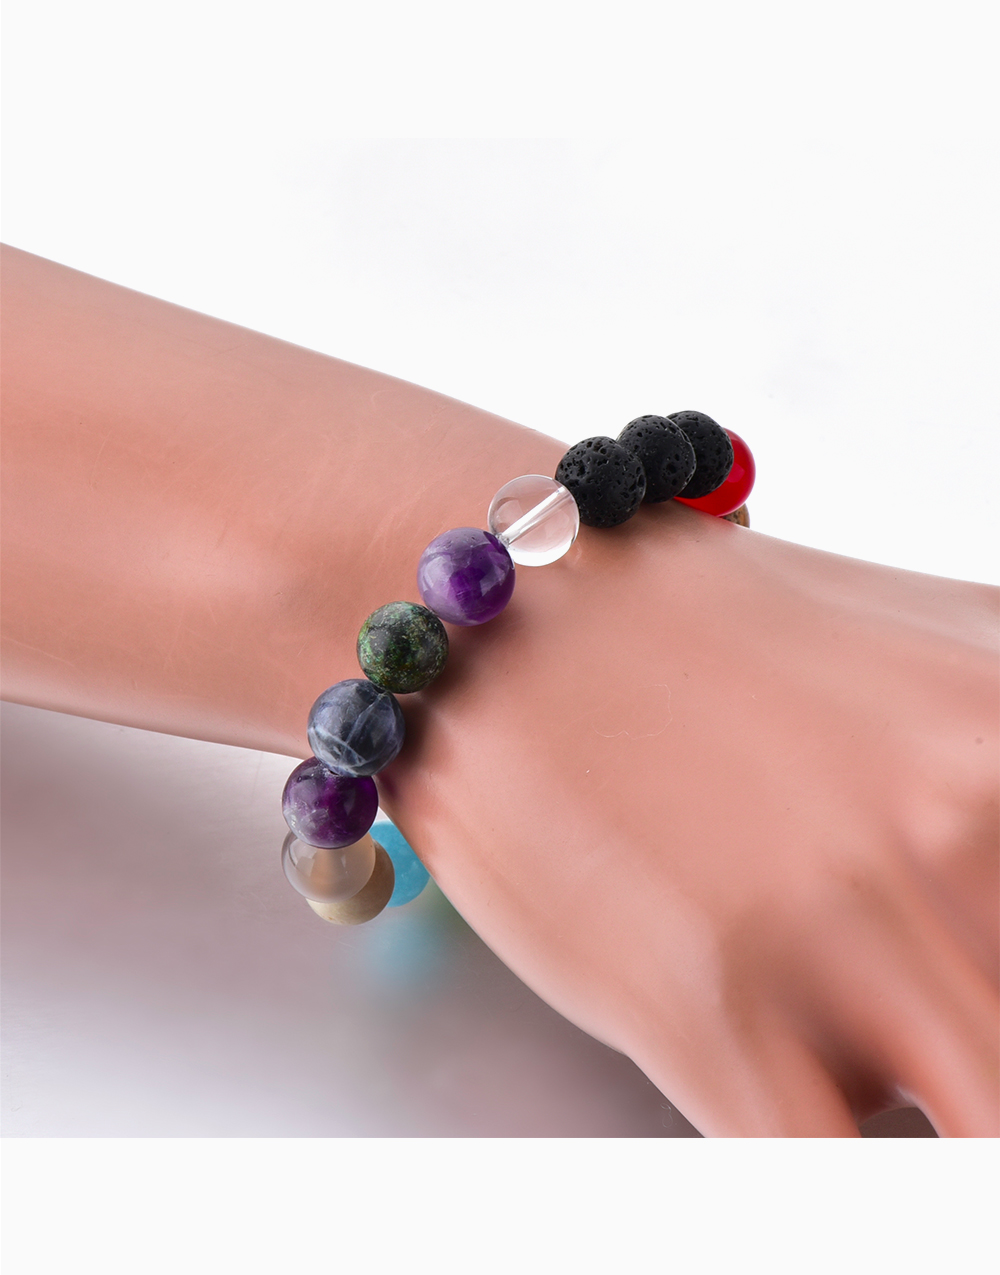 All In One Crystal Diffuser Bracelet by Stones for the Soul